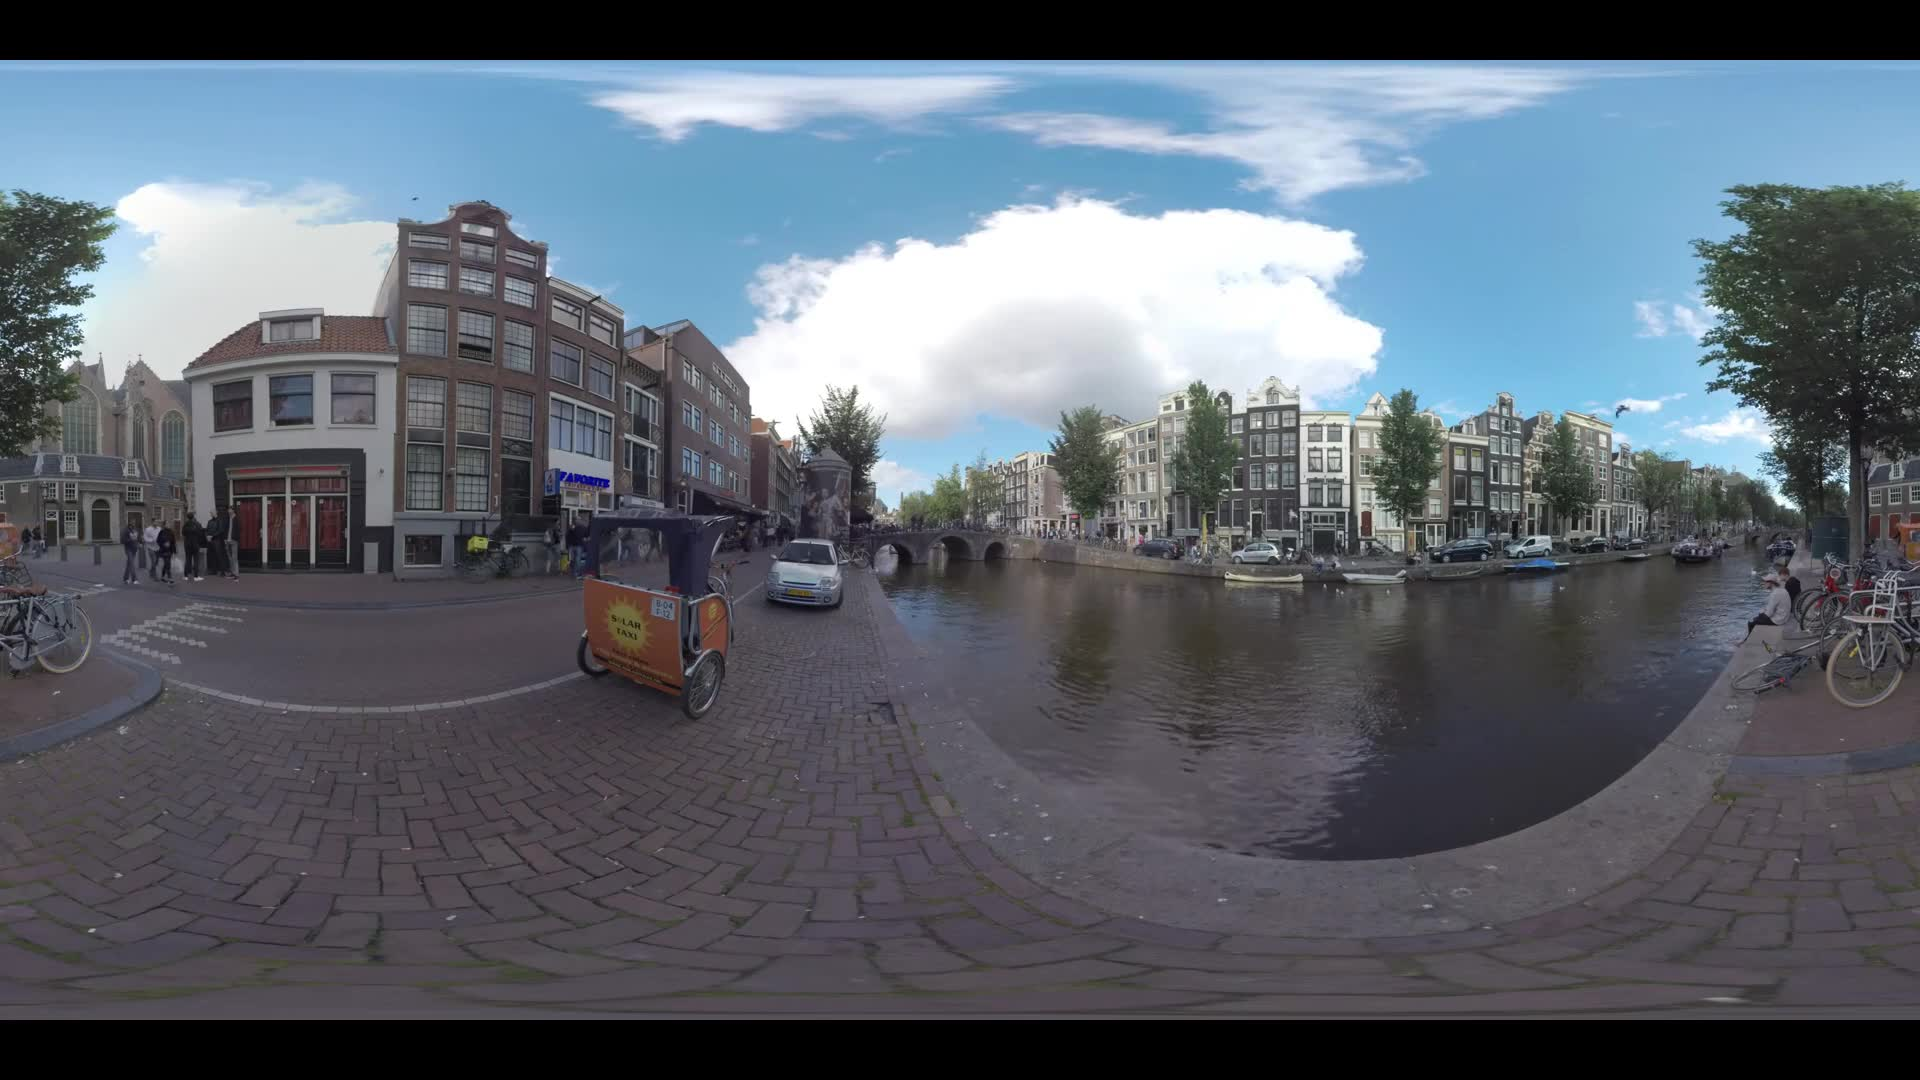 AMSTERDAM, NETHERLANDS - AUGUST 09, 2016: 360 VR Video. Dutch capital cityscape with canal, waterside houses and view to 800-year-old Oude Kerk